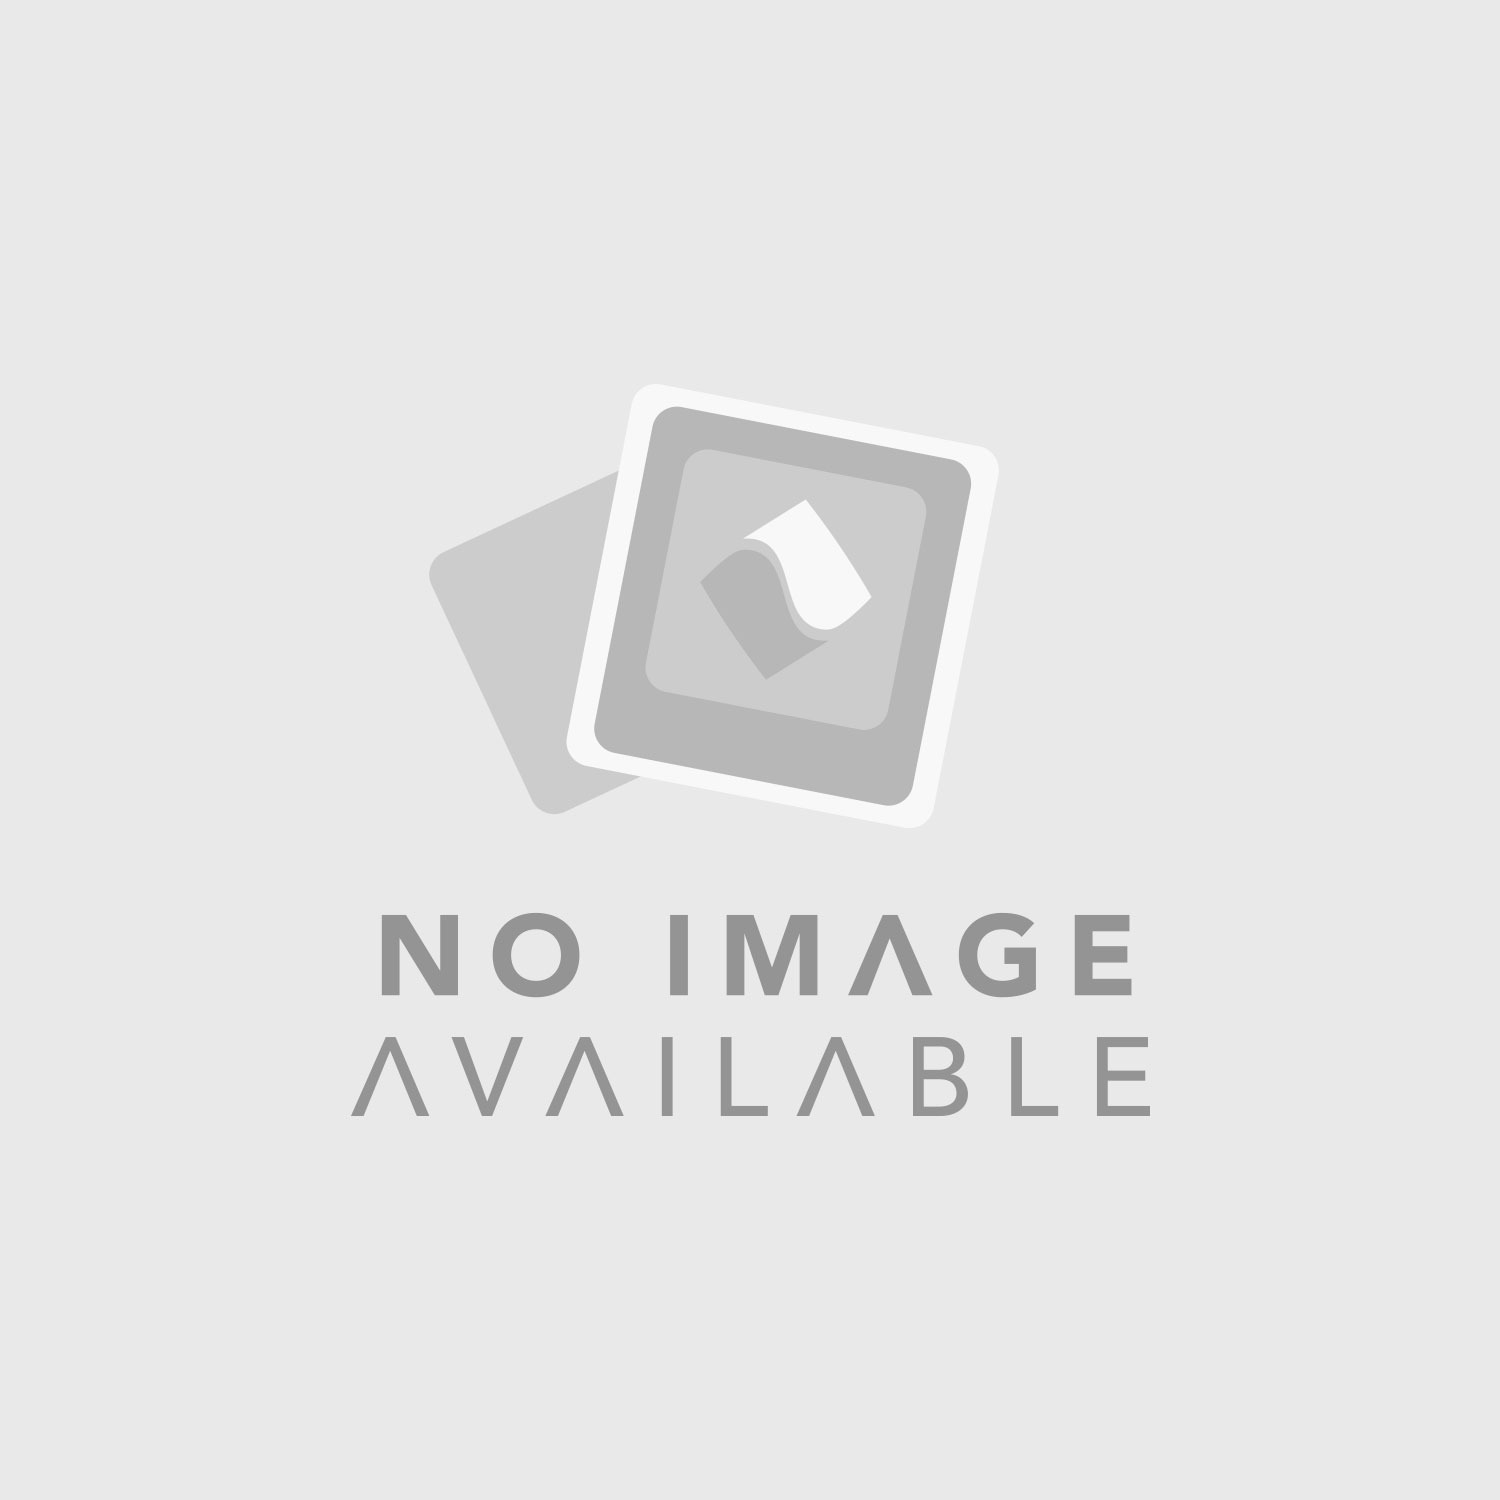 Antari FLG-4 Heavy Fog Liquid (1 Gallon)